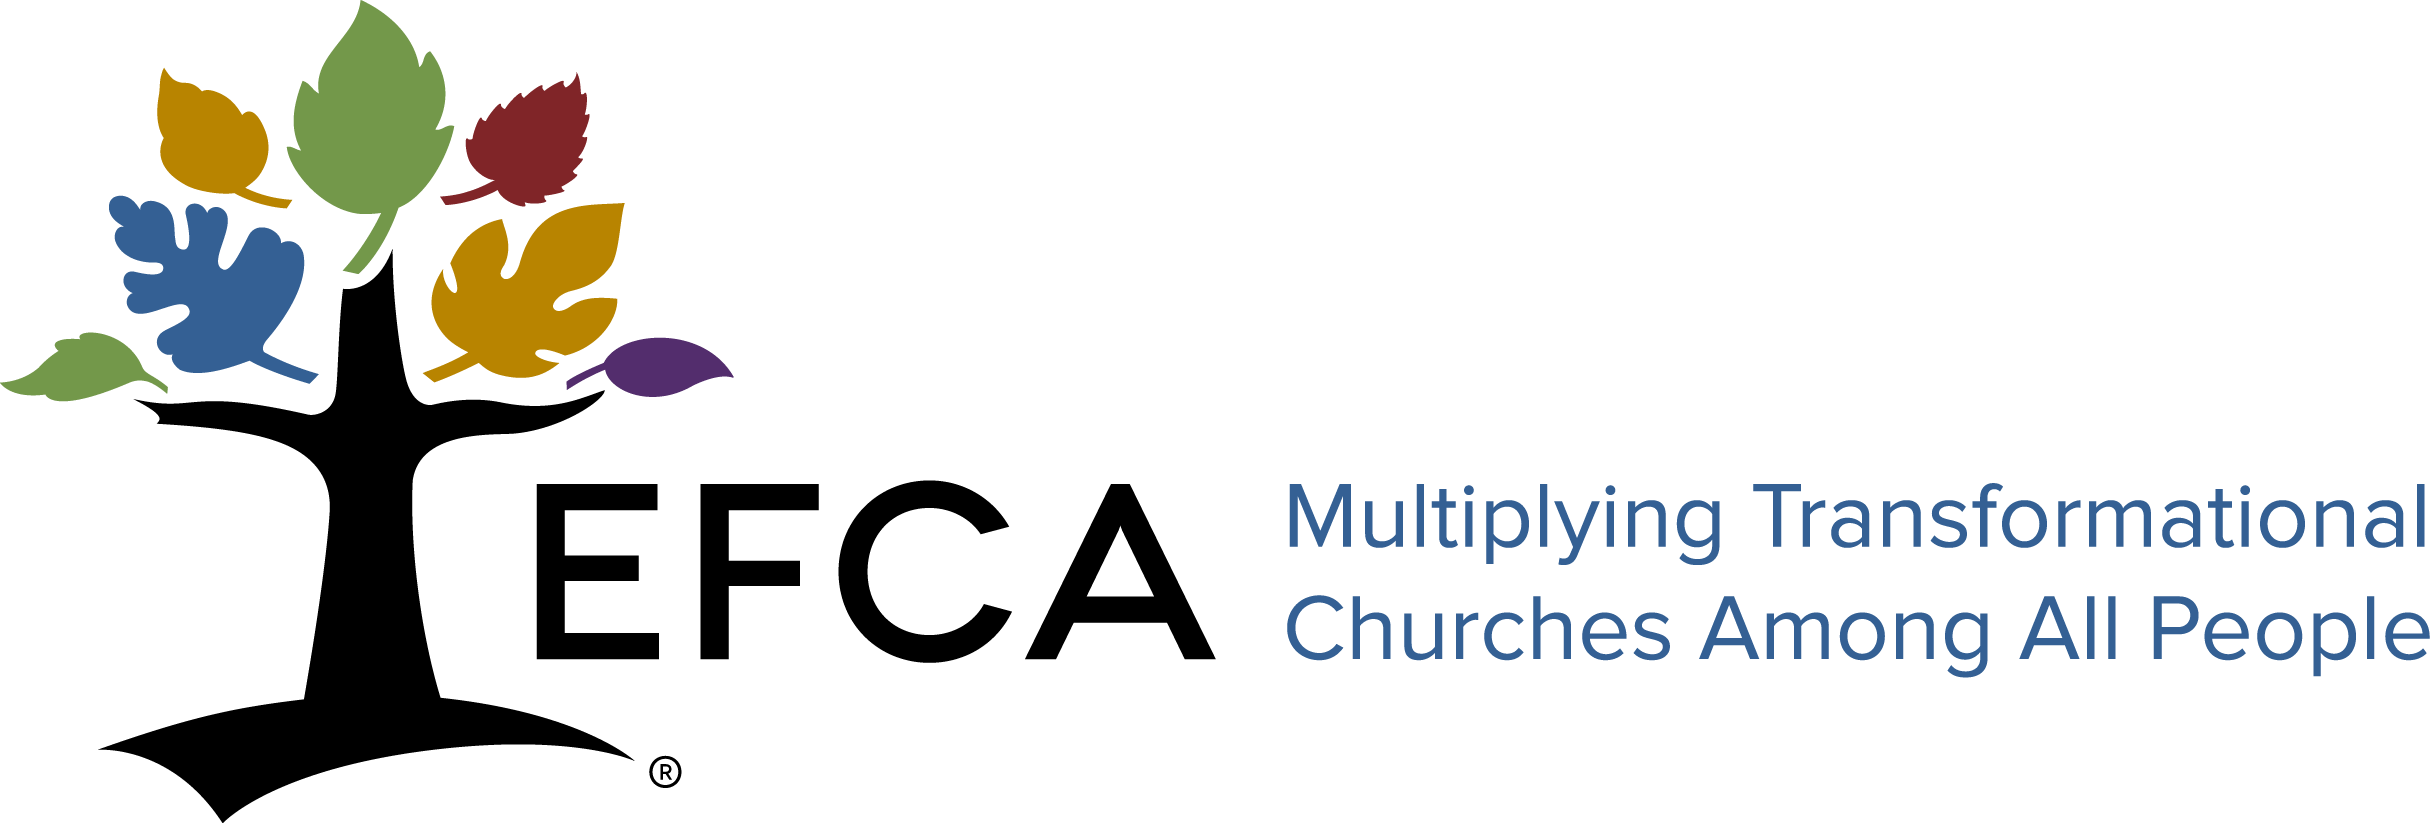 Evangelical Free Church of America logo